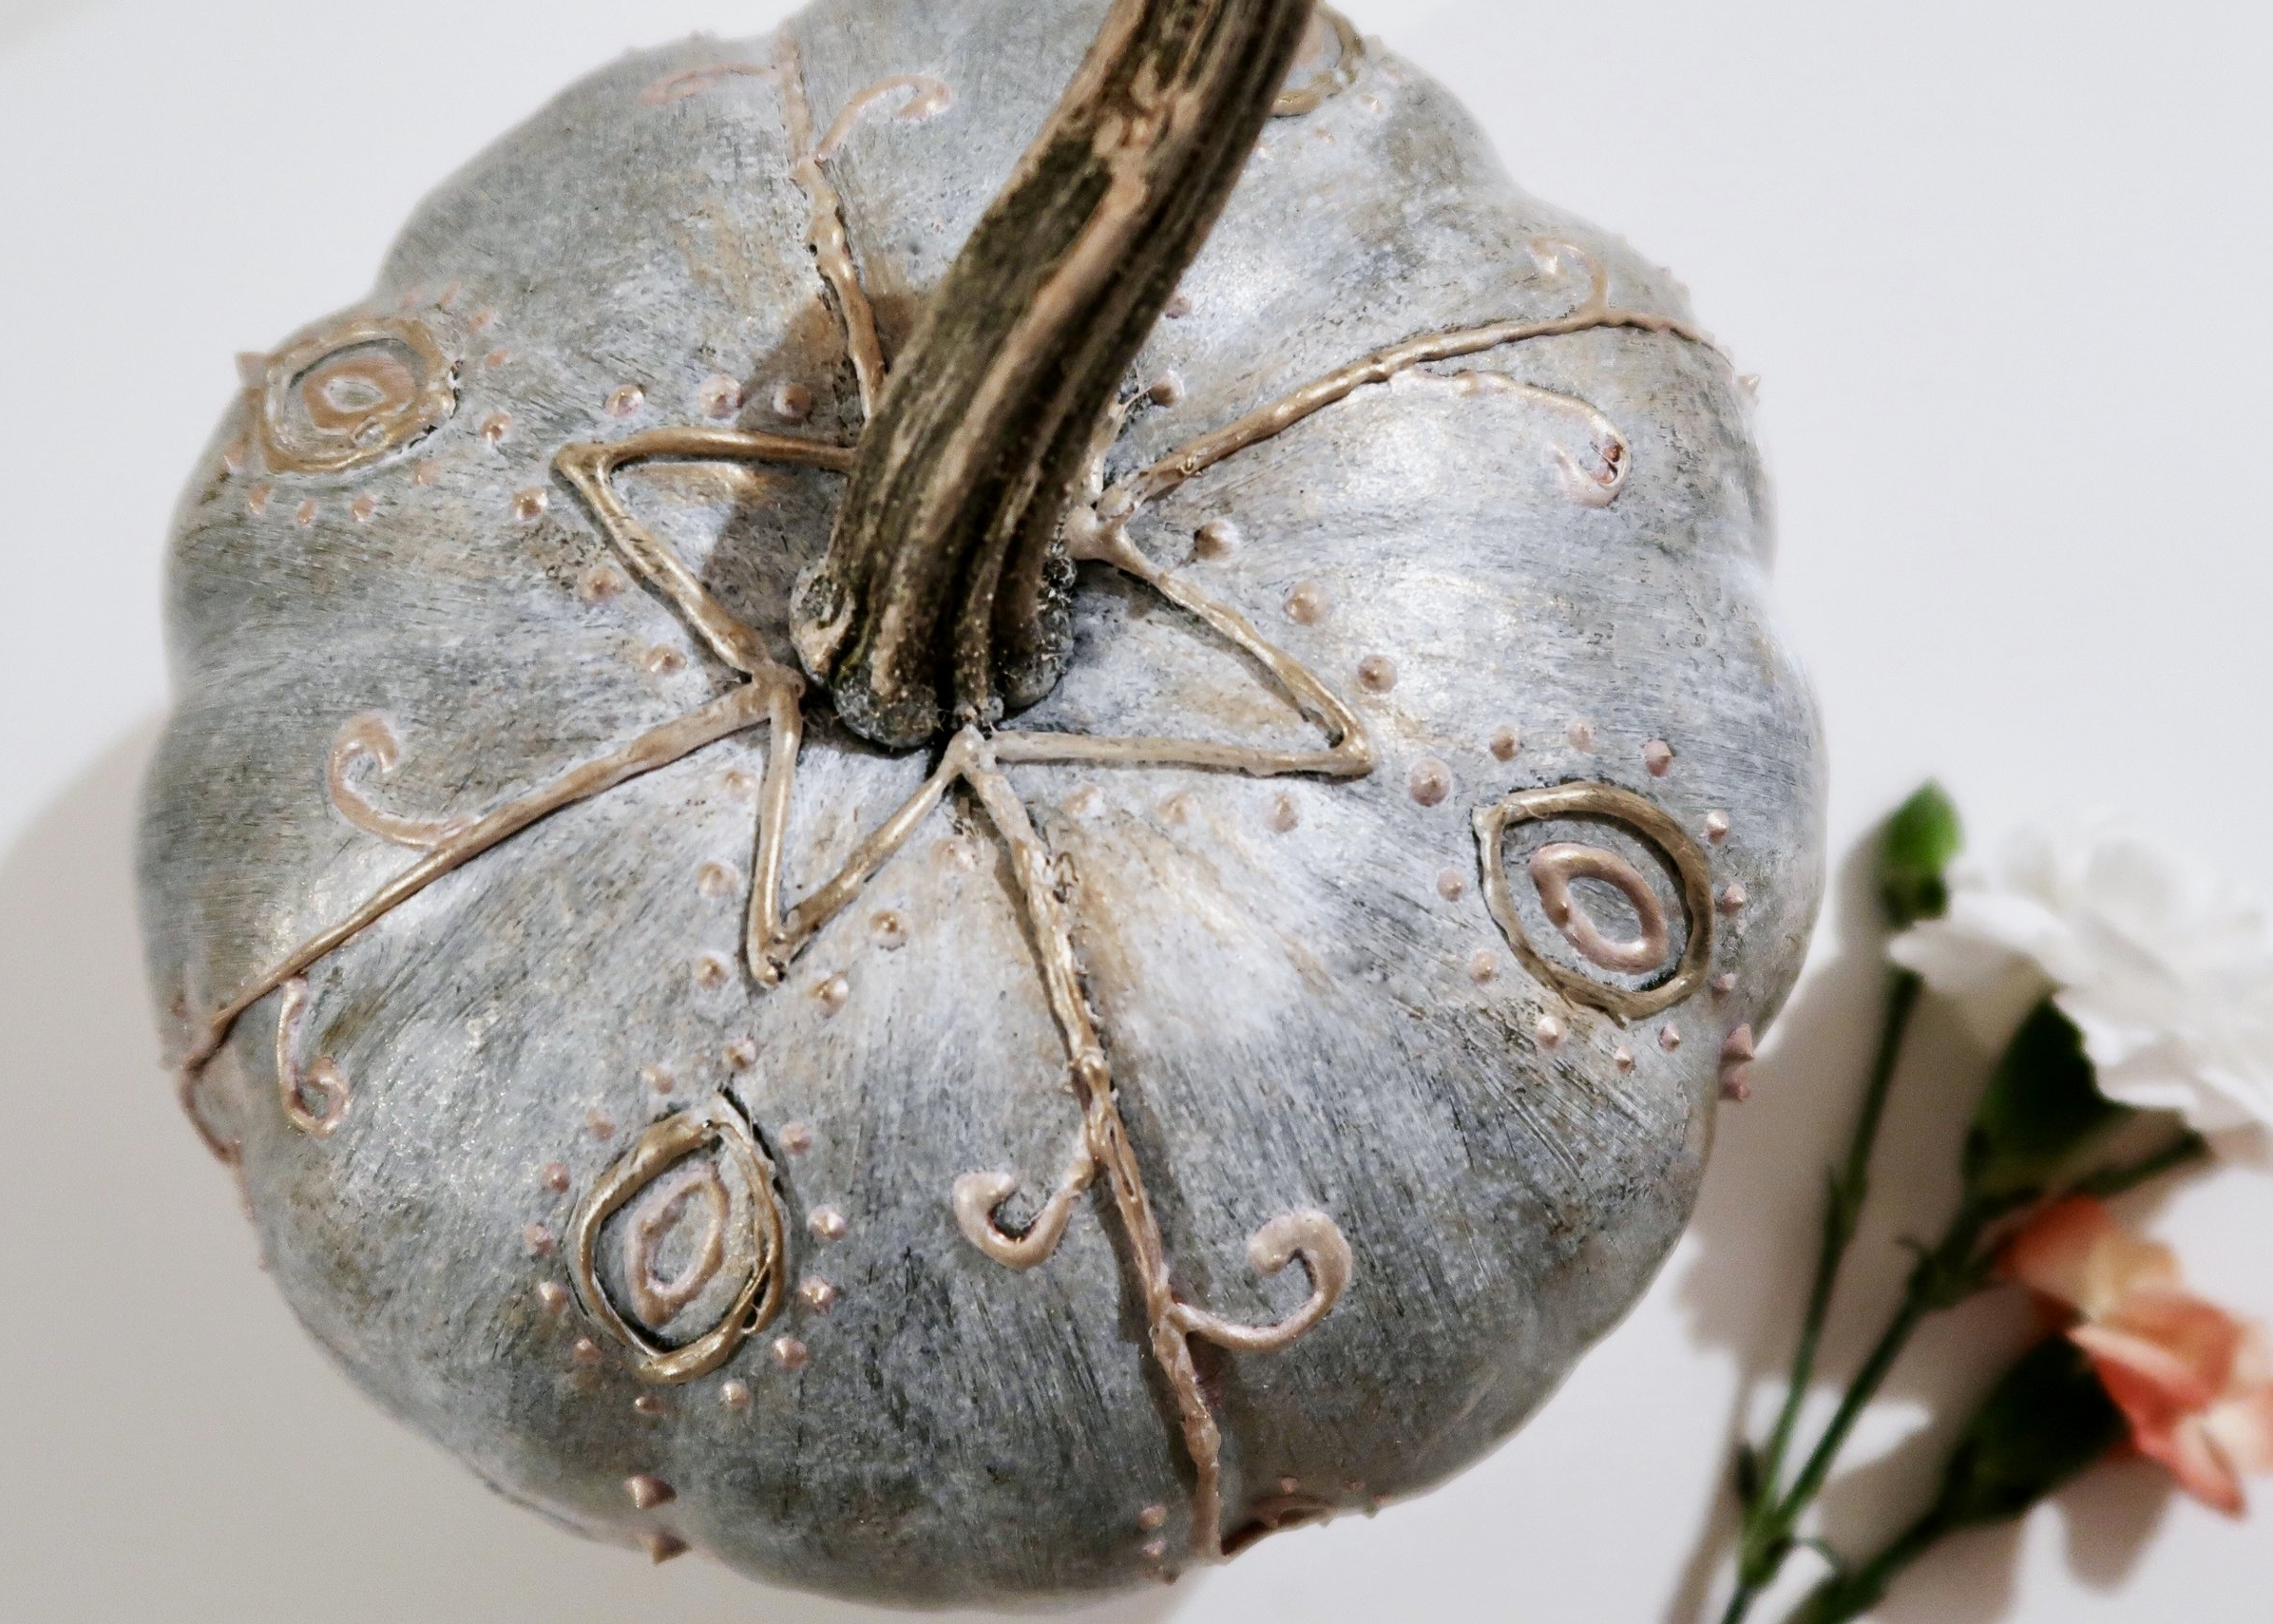 5. - Once dry, dry brush gold acrylic paint all over the pumpkin being sure to focus it on the glue and fabric paint. To dry brush, wipe most of the paint off of the brush onto a tissue before painting.